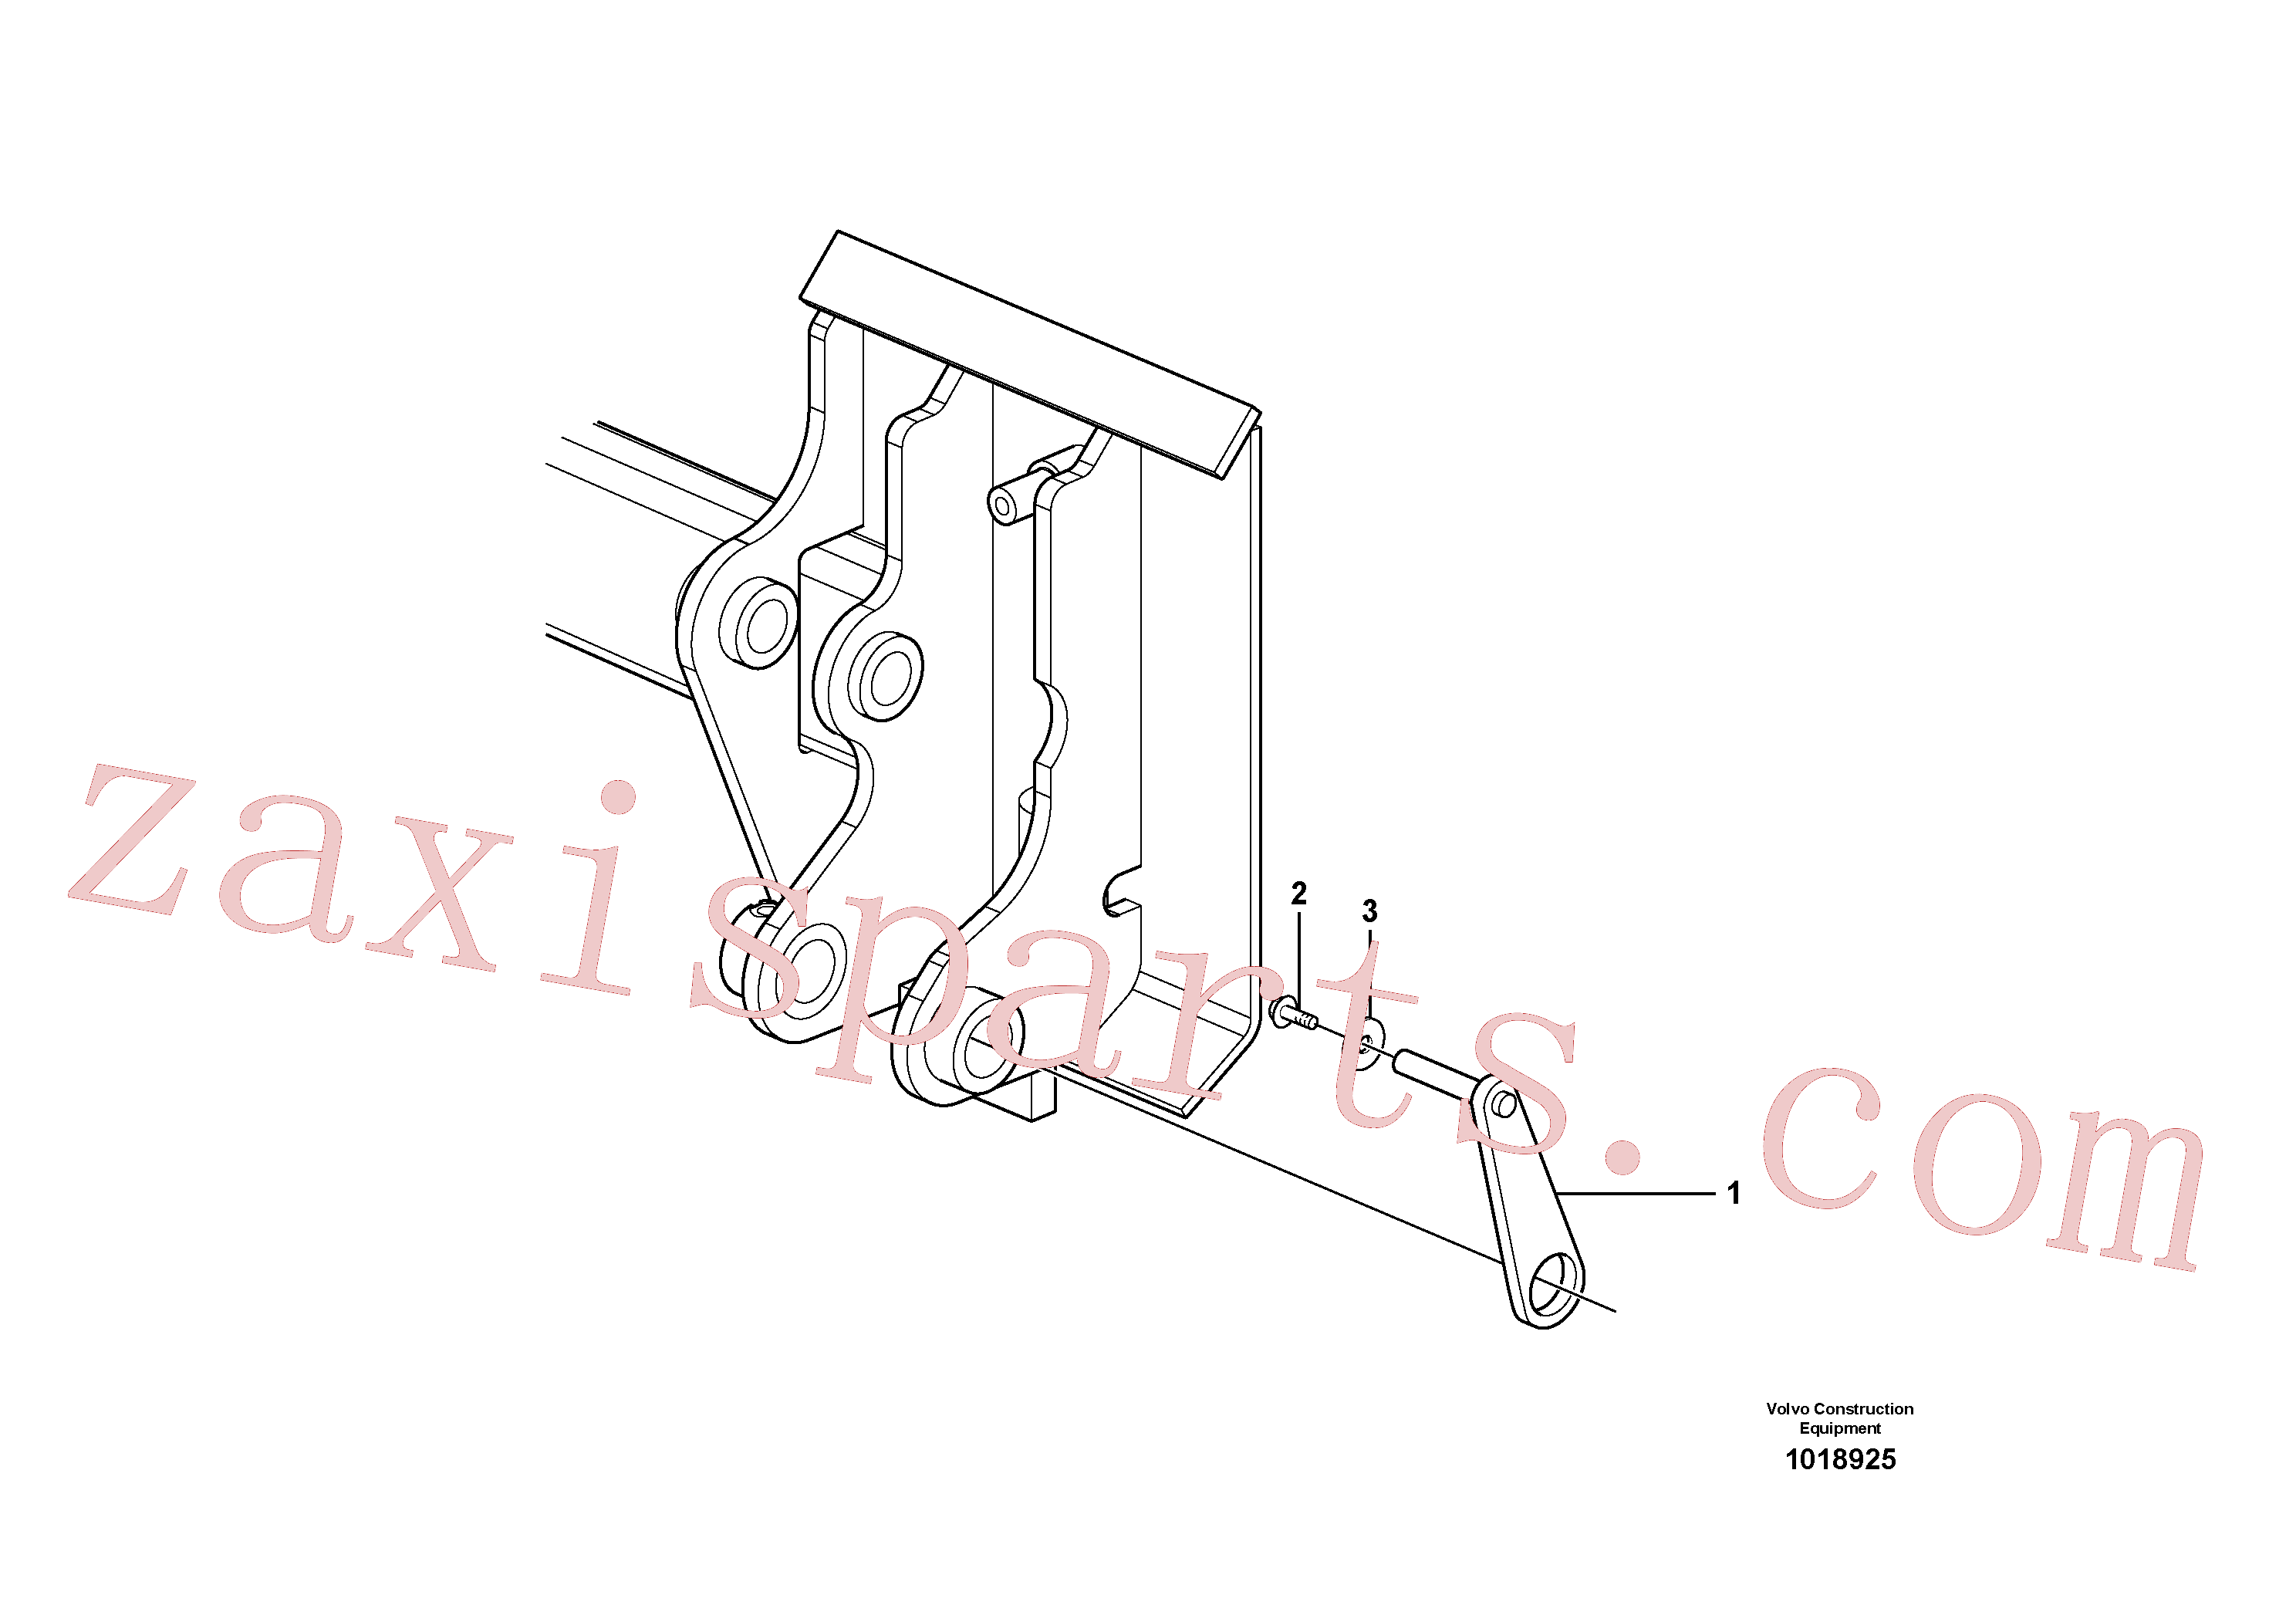 VOE11997884 for Volvo Mechanical lock(1018925 assembly)